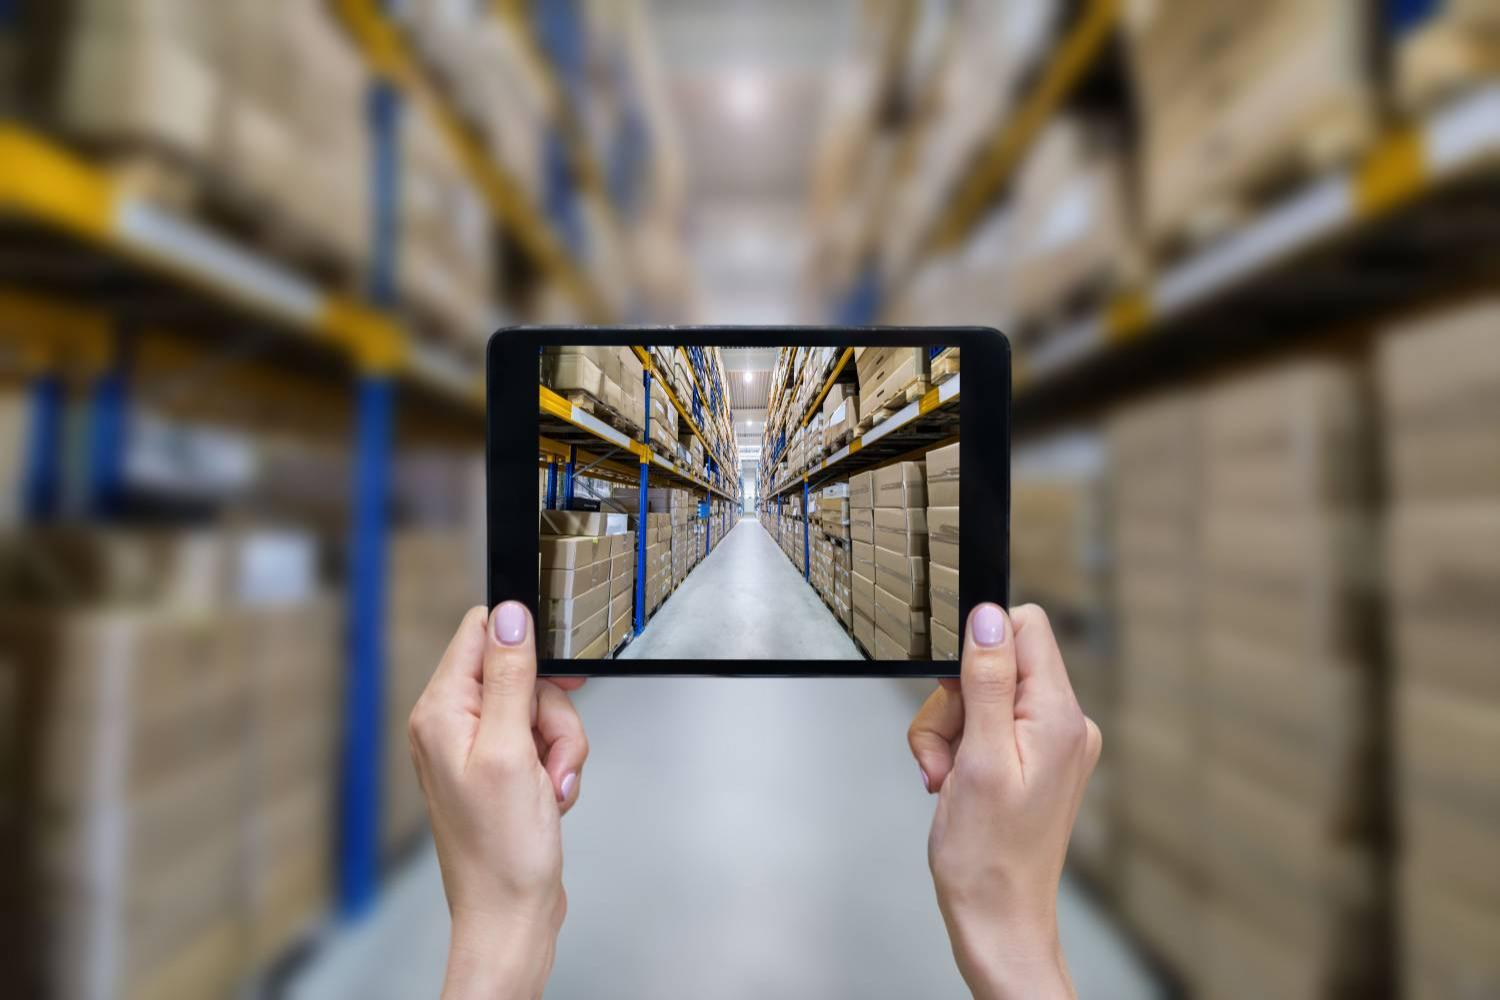 Tablet in warehouse